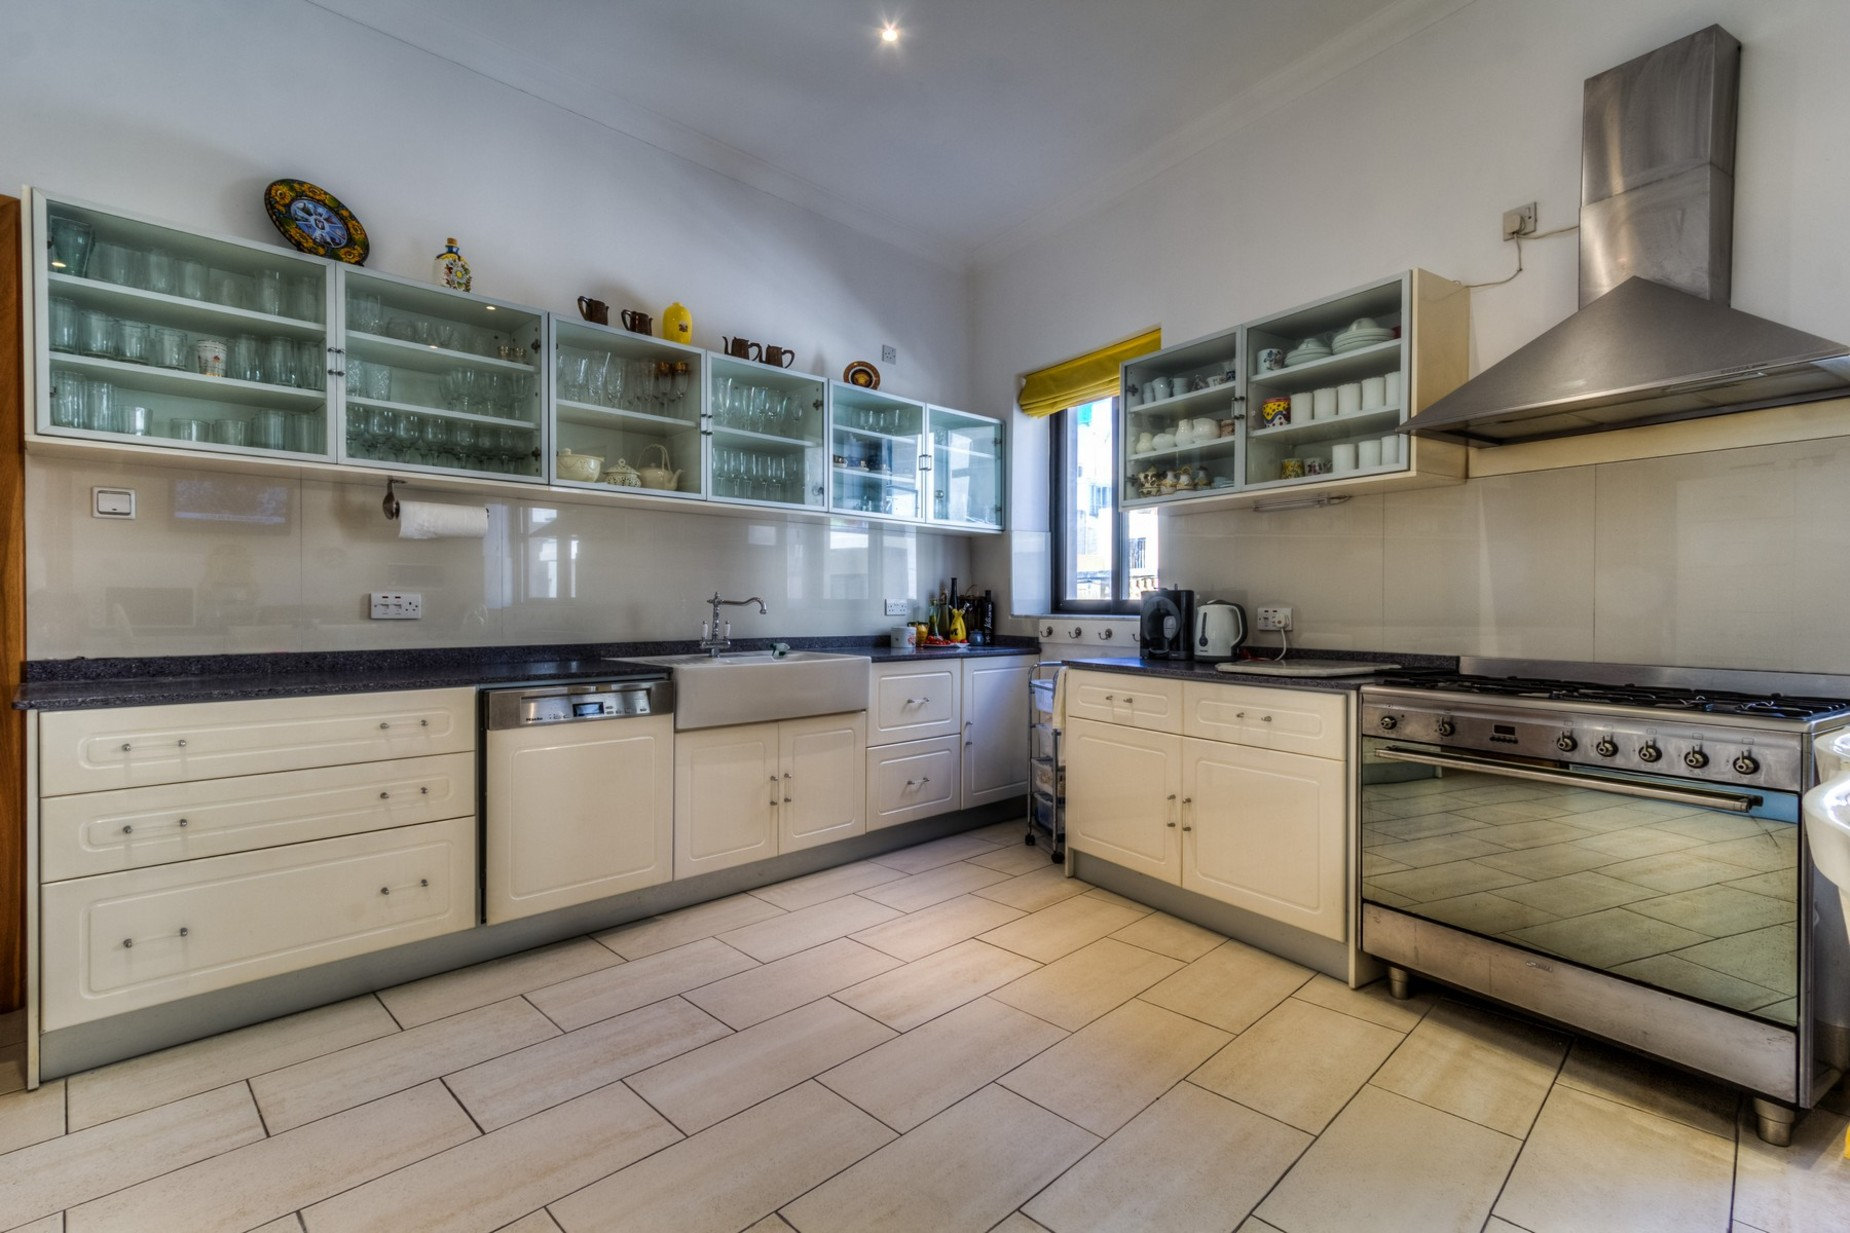 5 bed Apartment For Sale in Sliema, Sliema - thumb 14